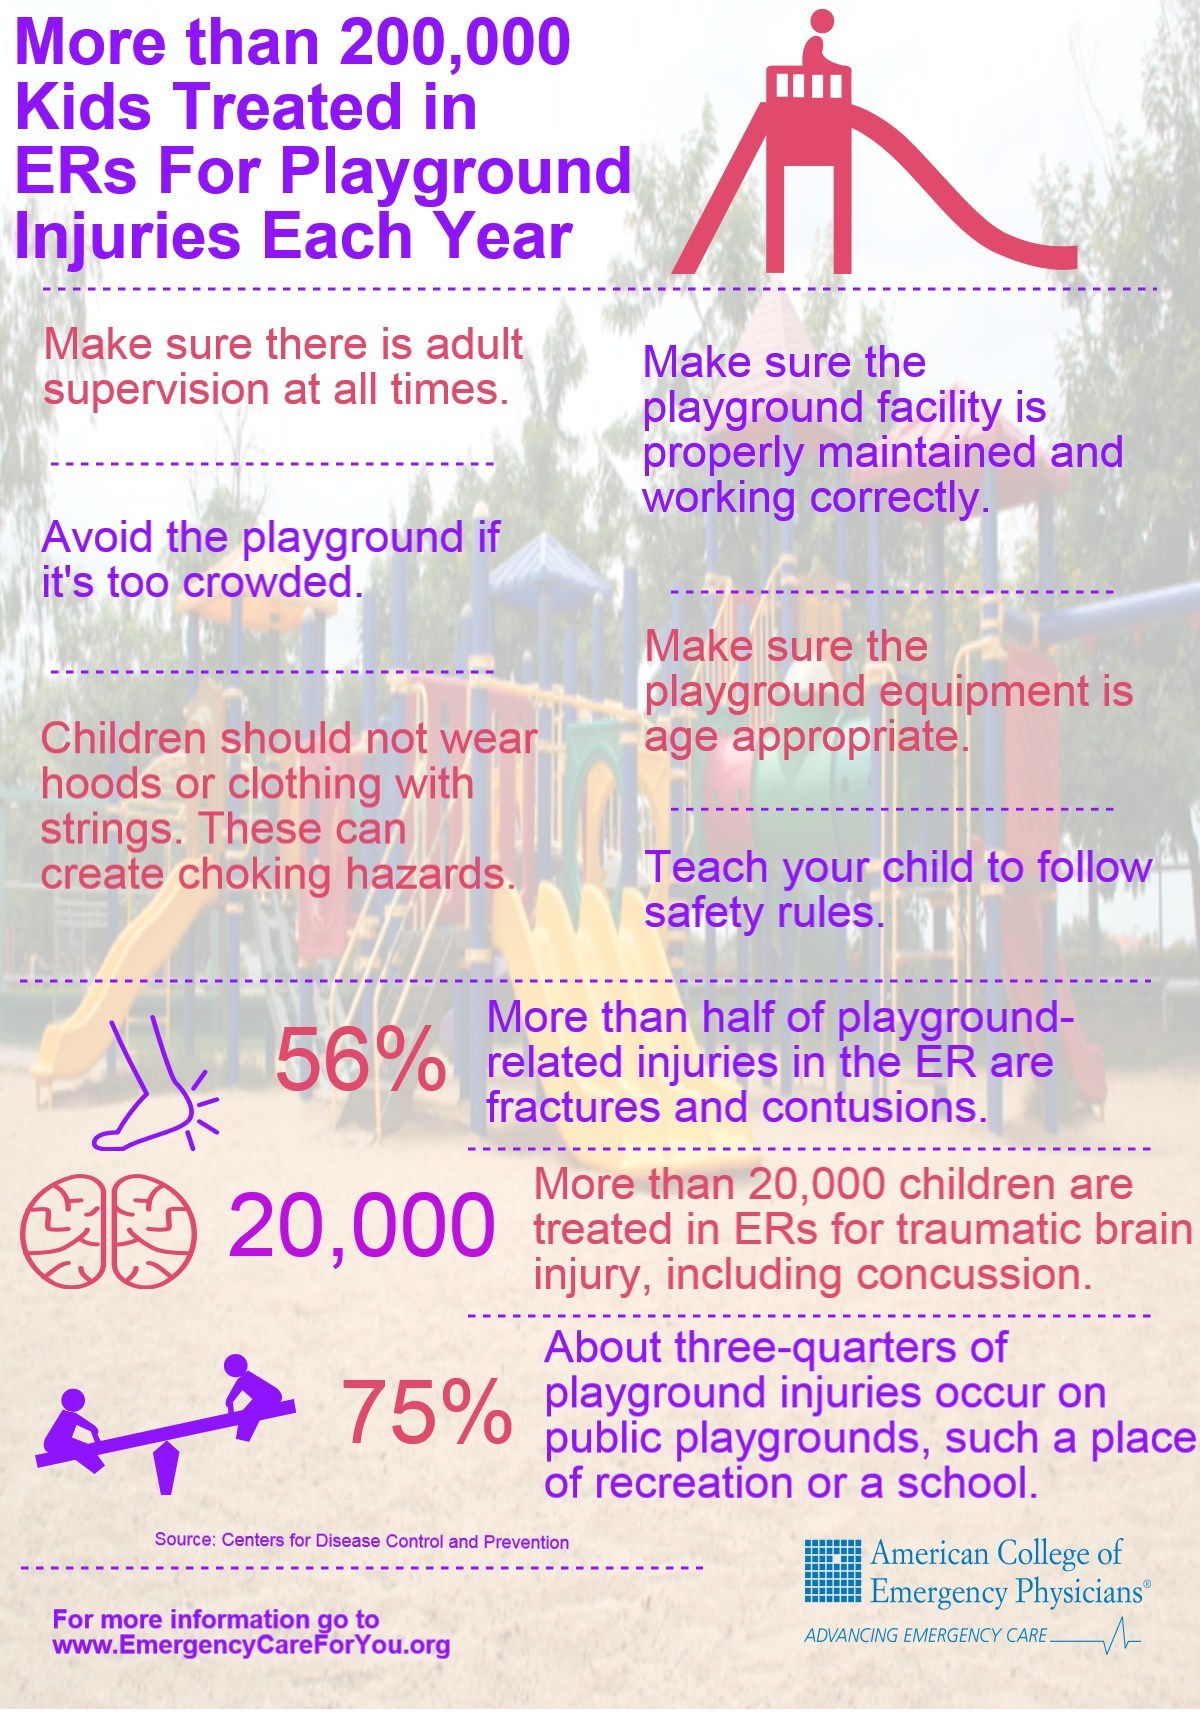 Help Prevent Playground Injuries